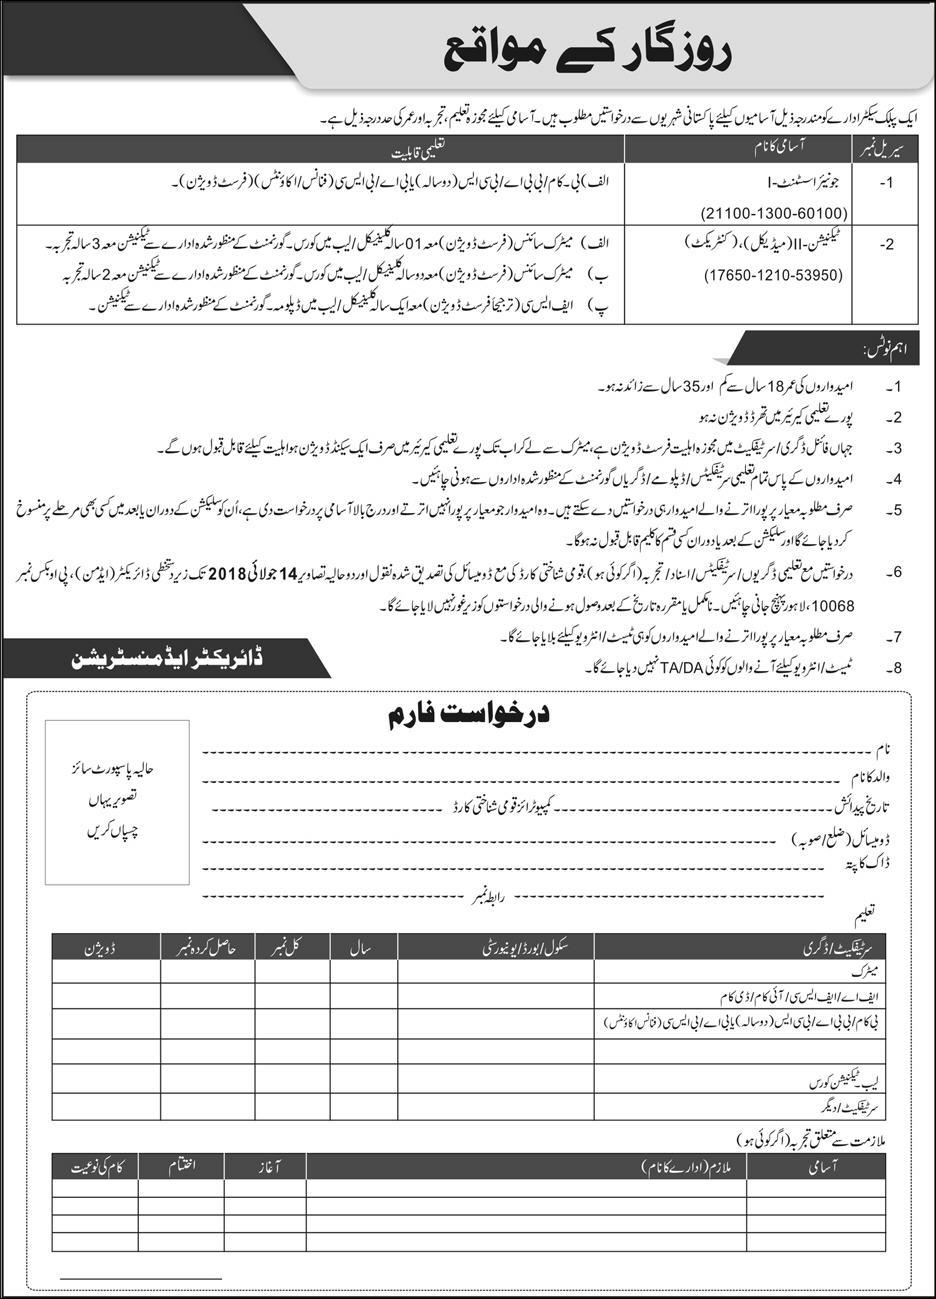 A Public Sector Organization Pakistan Latest Jobs 2018  in Lahore on June, 2018 | Government